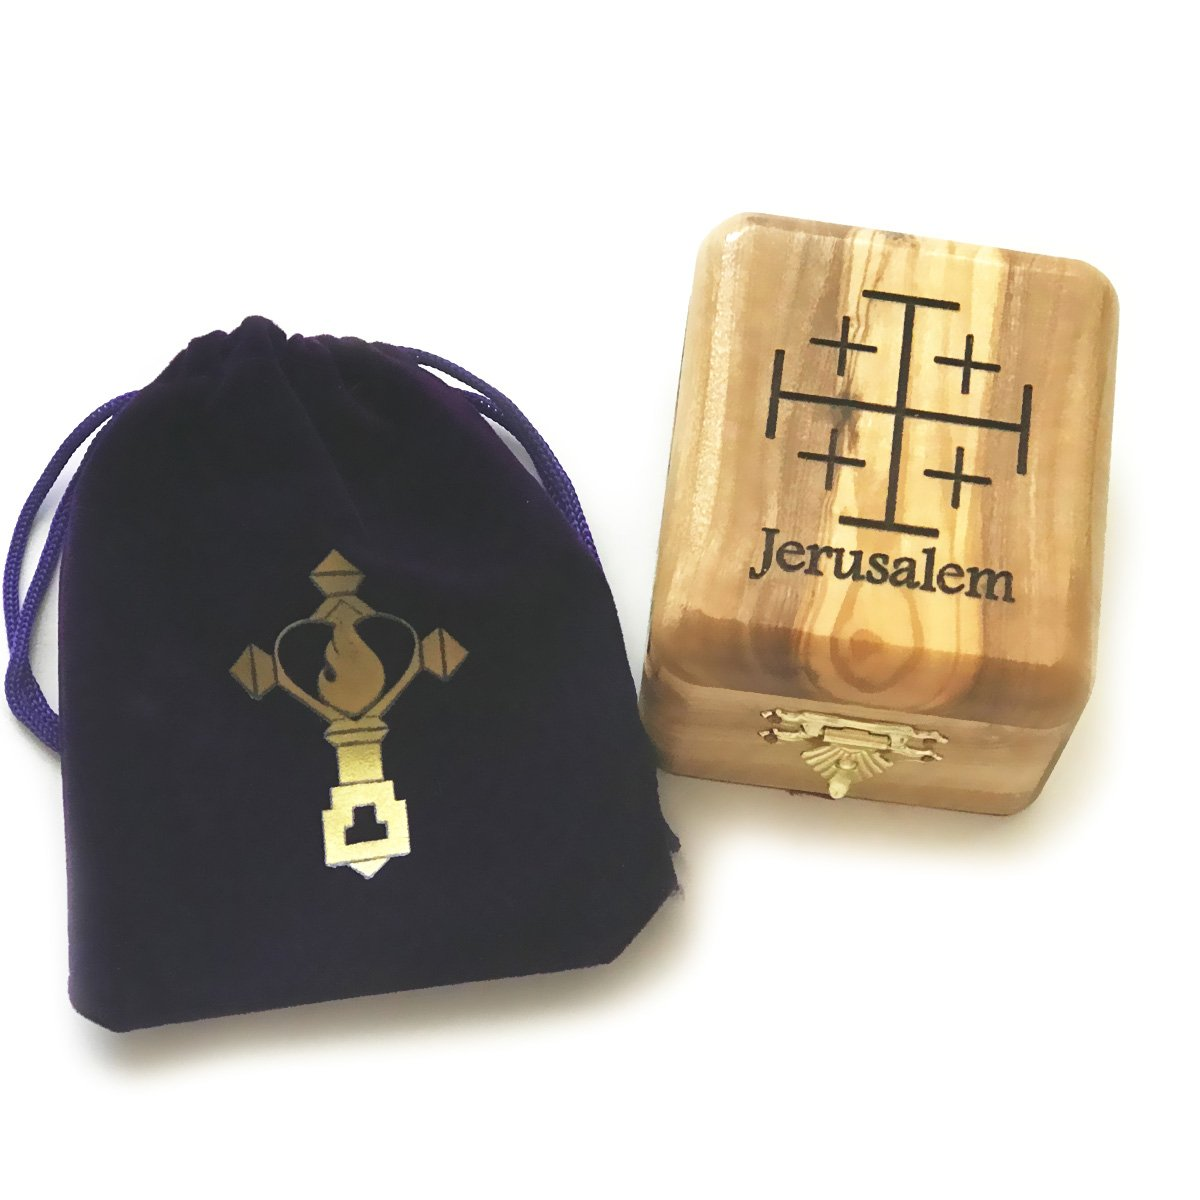 Rosary Box - Catholic Necklace Jewelry Box Made of Olive Wood from the Holy Land with Free Rosary Pouch by Christian Catholic Shop